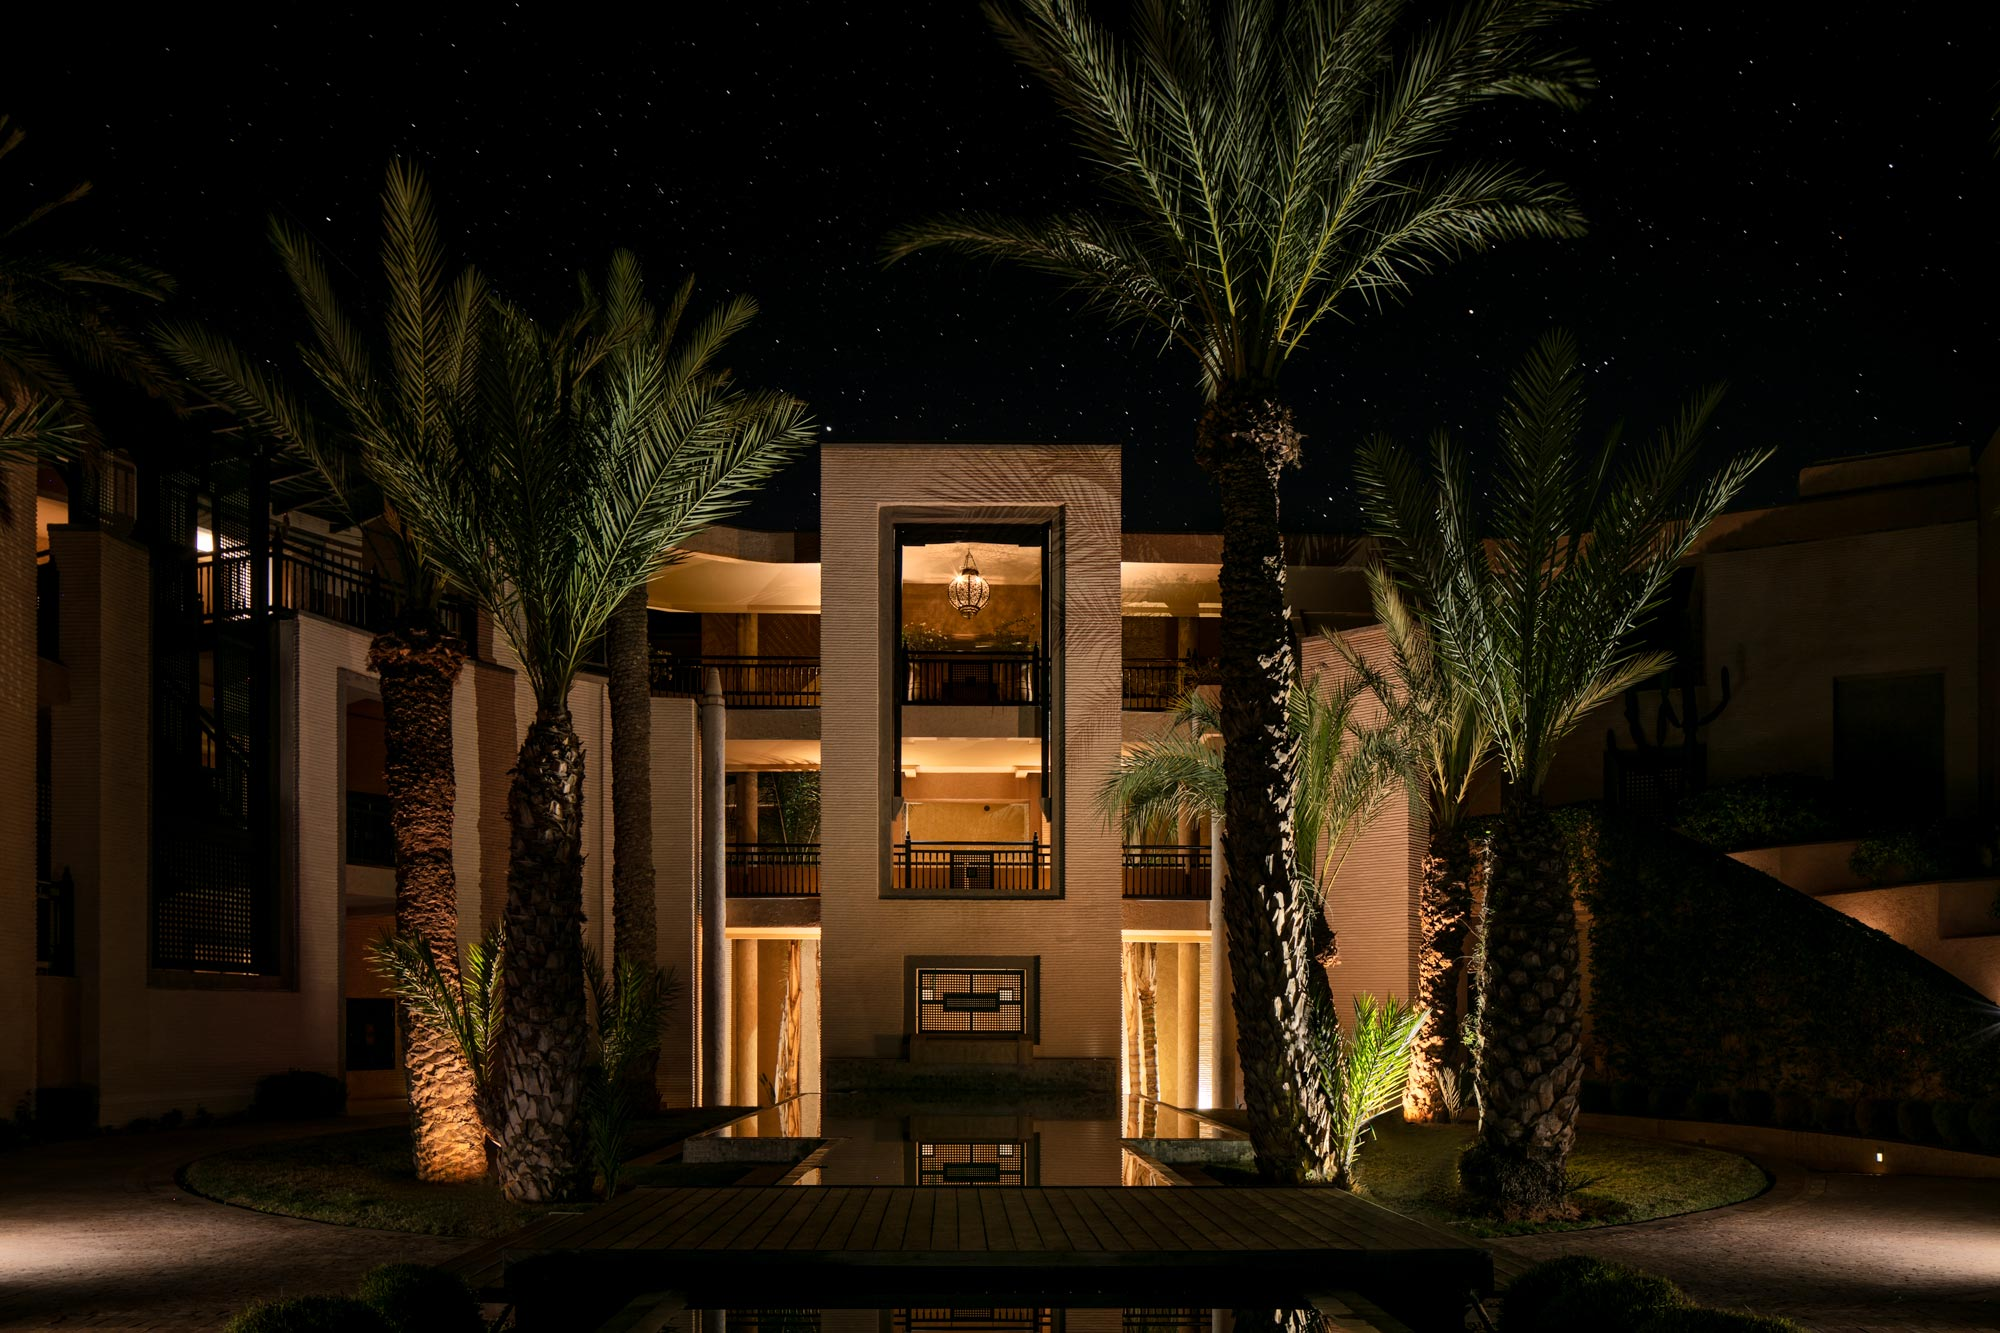 Fairmont-Royal-Palm-Marrakech-Exterior-by-Adrian-Kilchherr-Luxury-Hotel-Resort-Photographer-Morocco